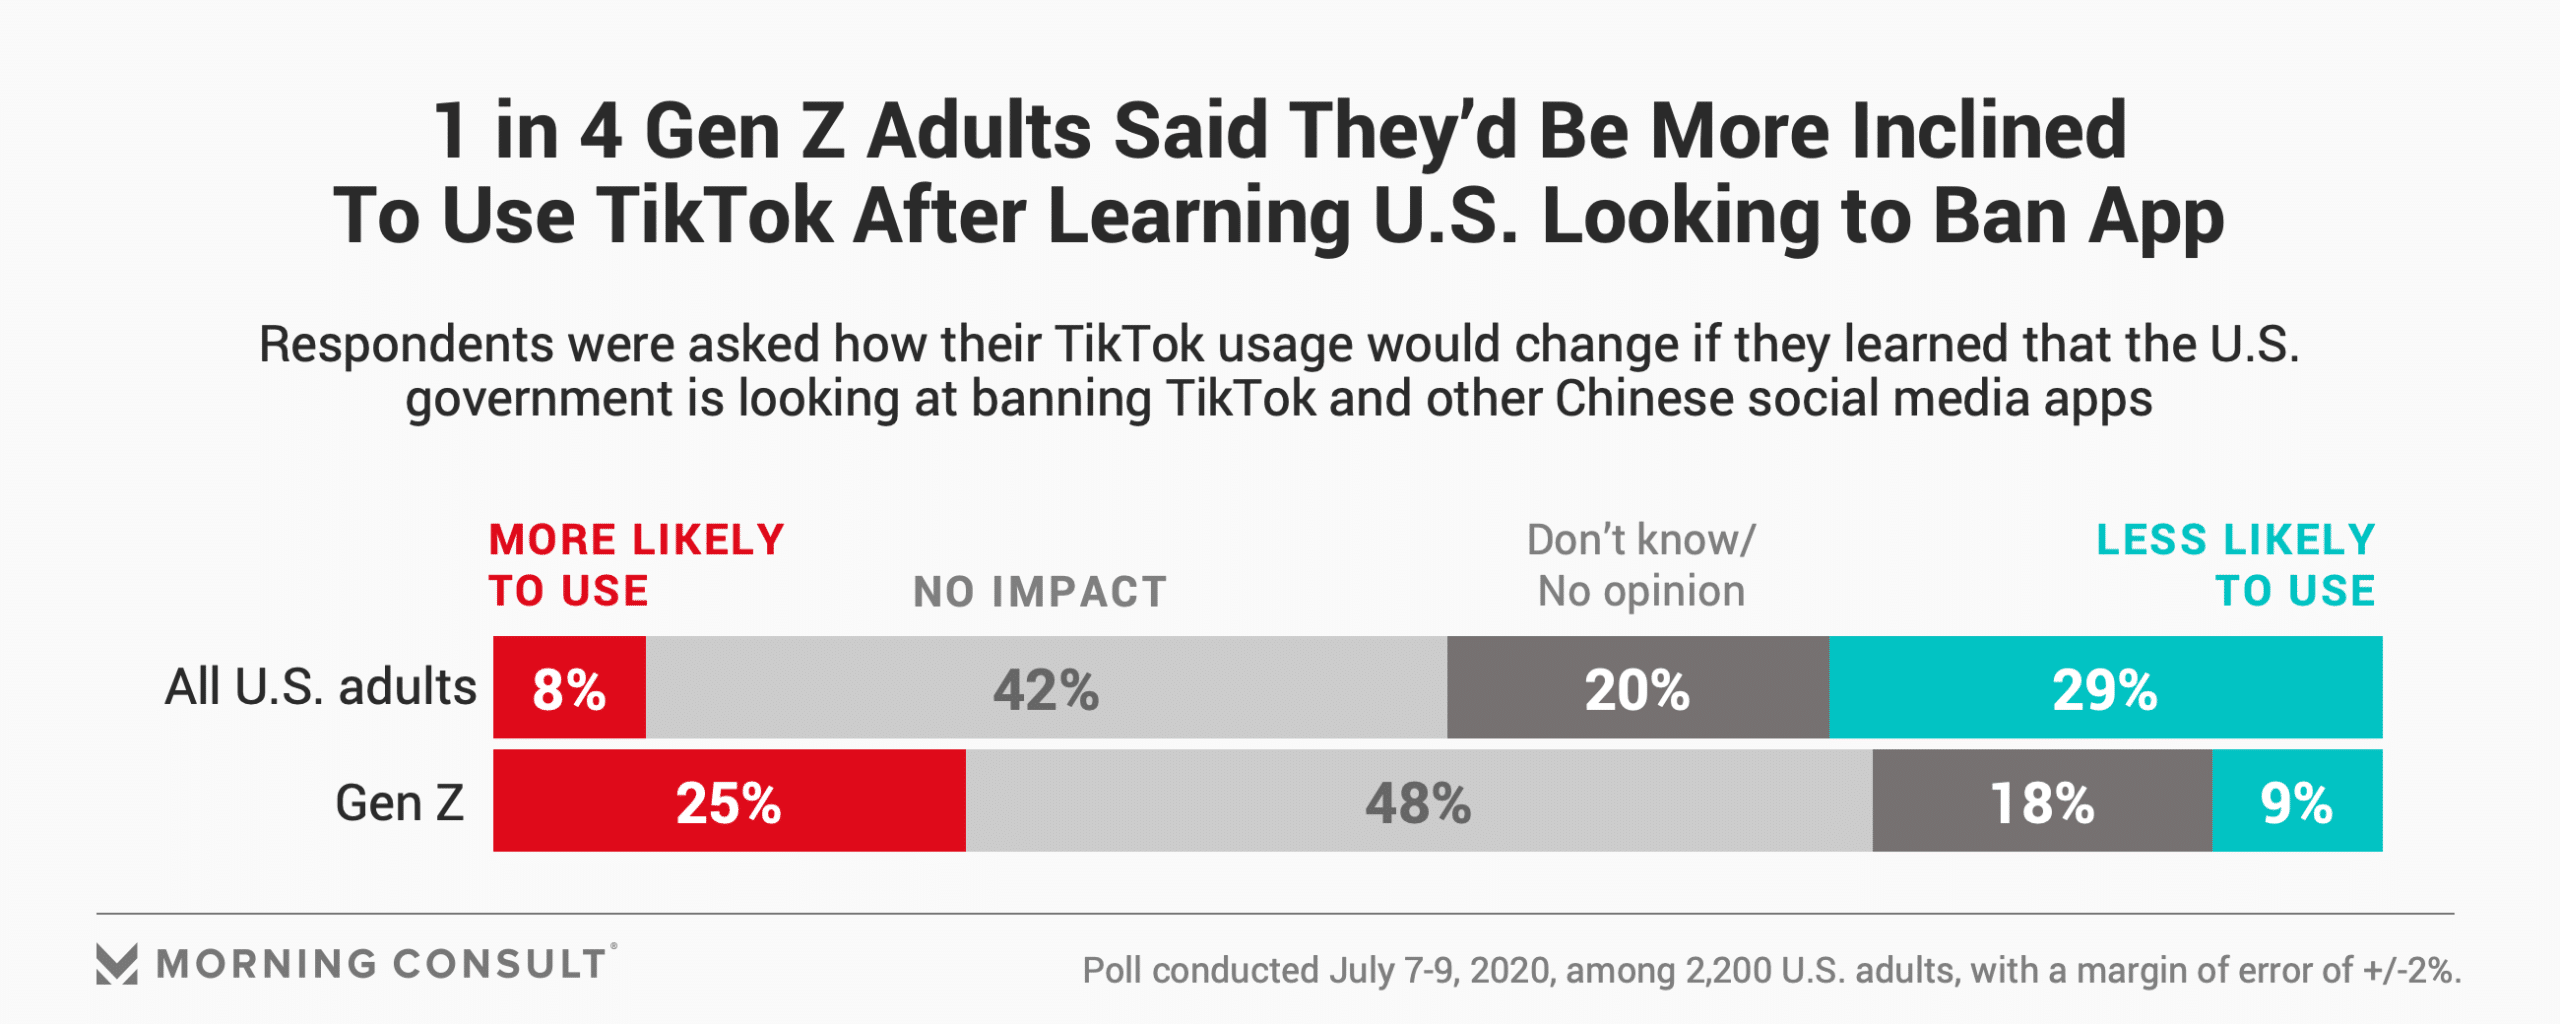 1 in 4 gen Z adults more inclined to use TikTok after learning about potential U.S. ban